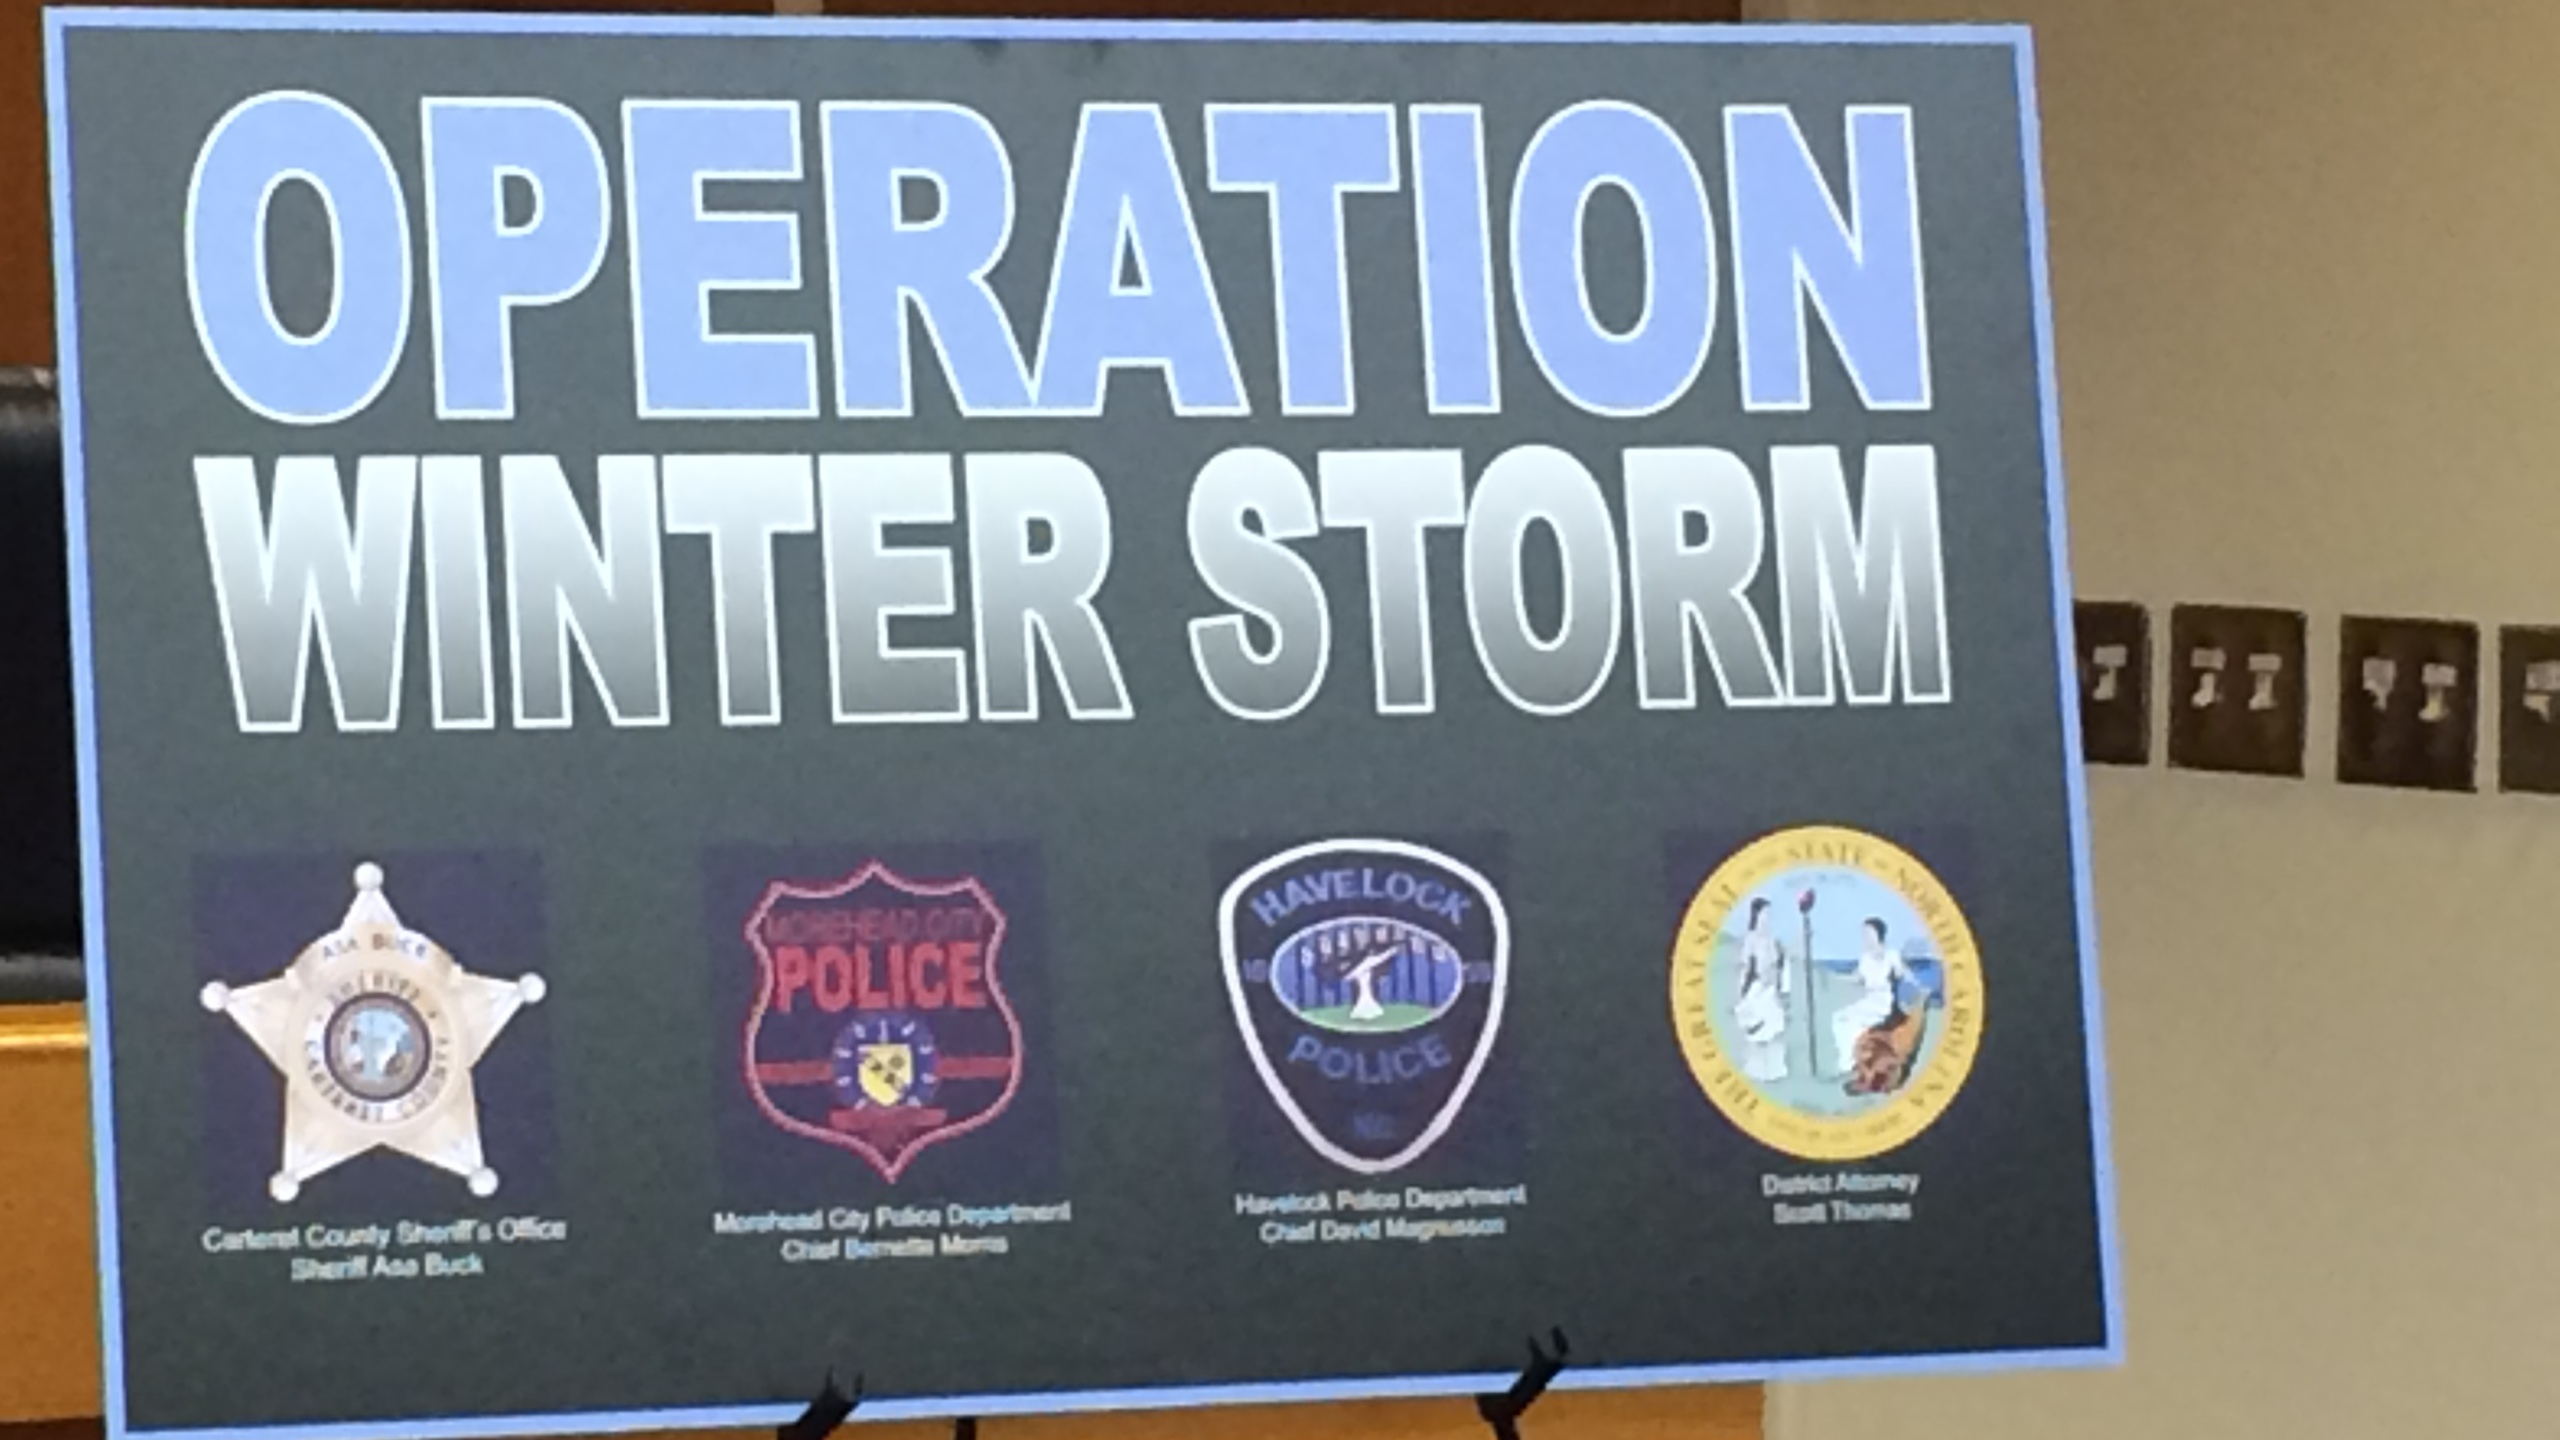 operation winter storm_178615